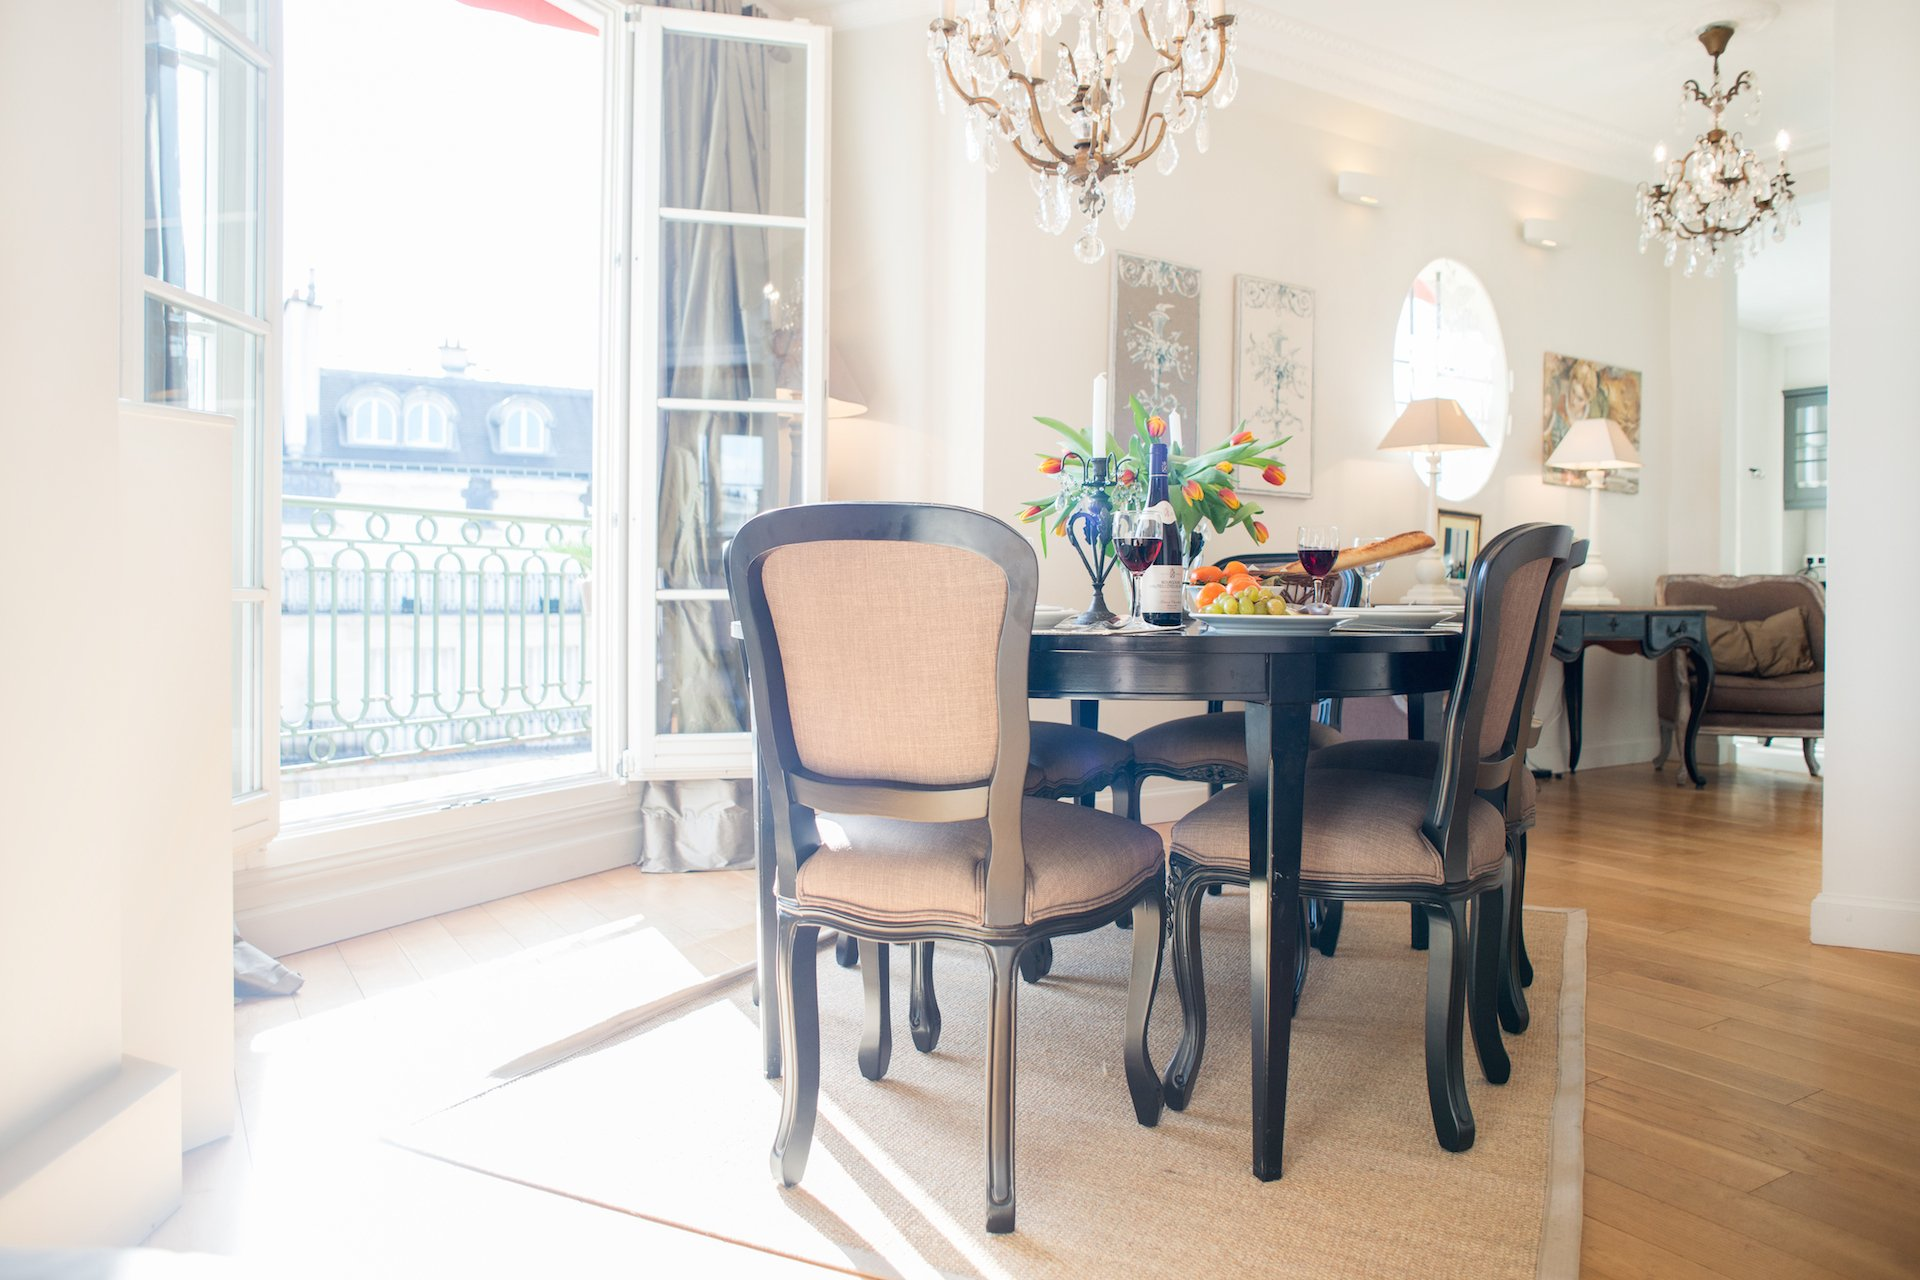 Paris rooftops from the dining table in the Margaux vacation rental offered by Paris Perfect